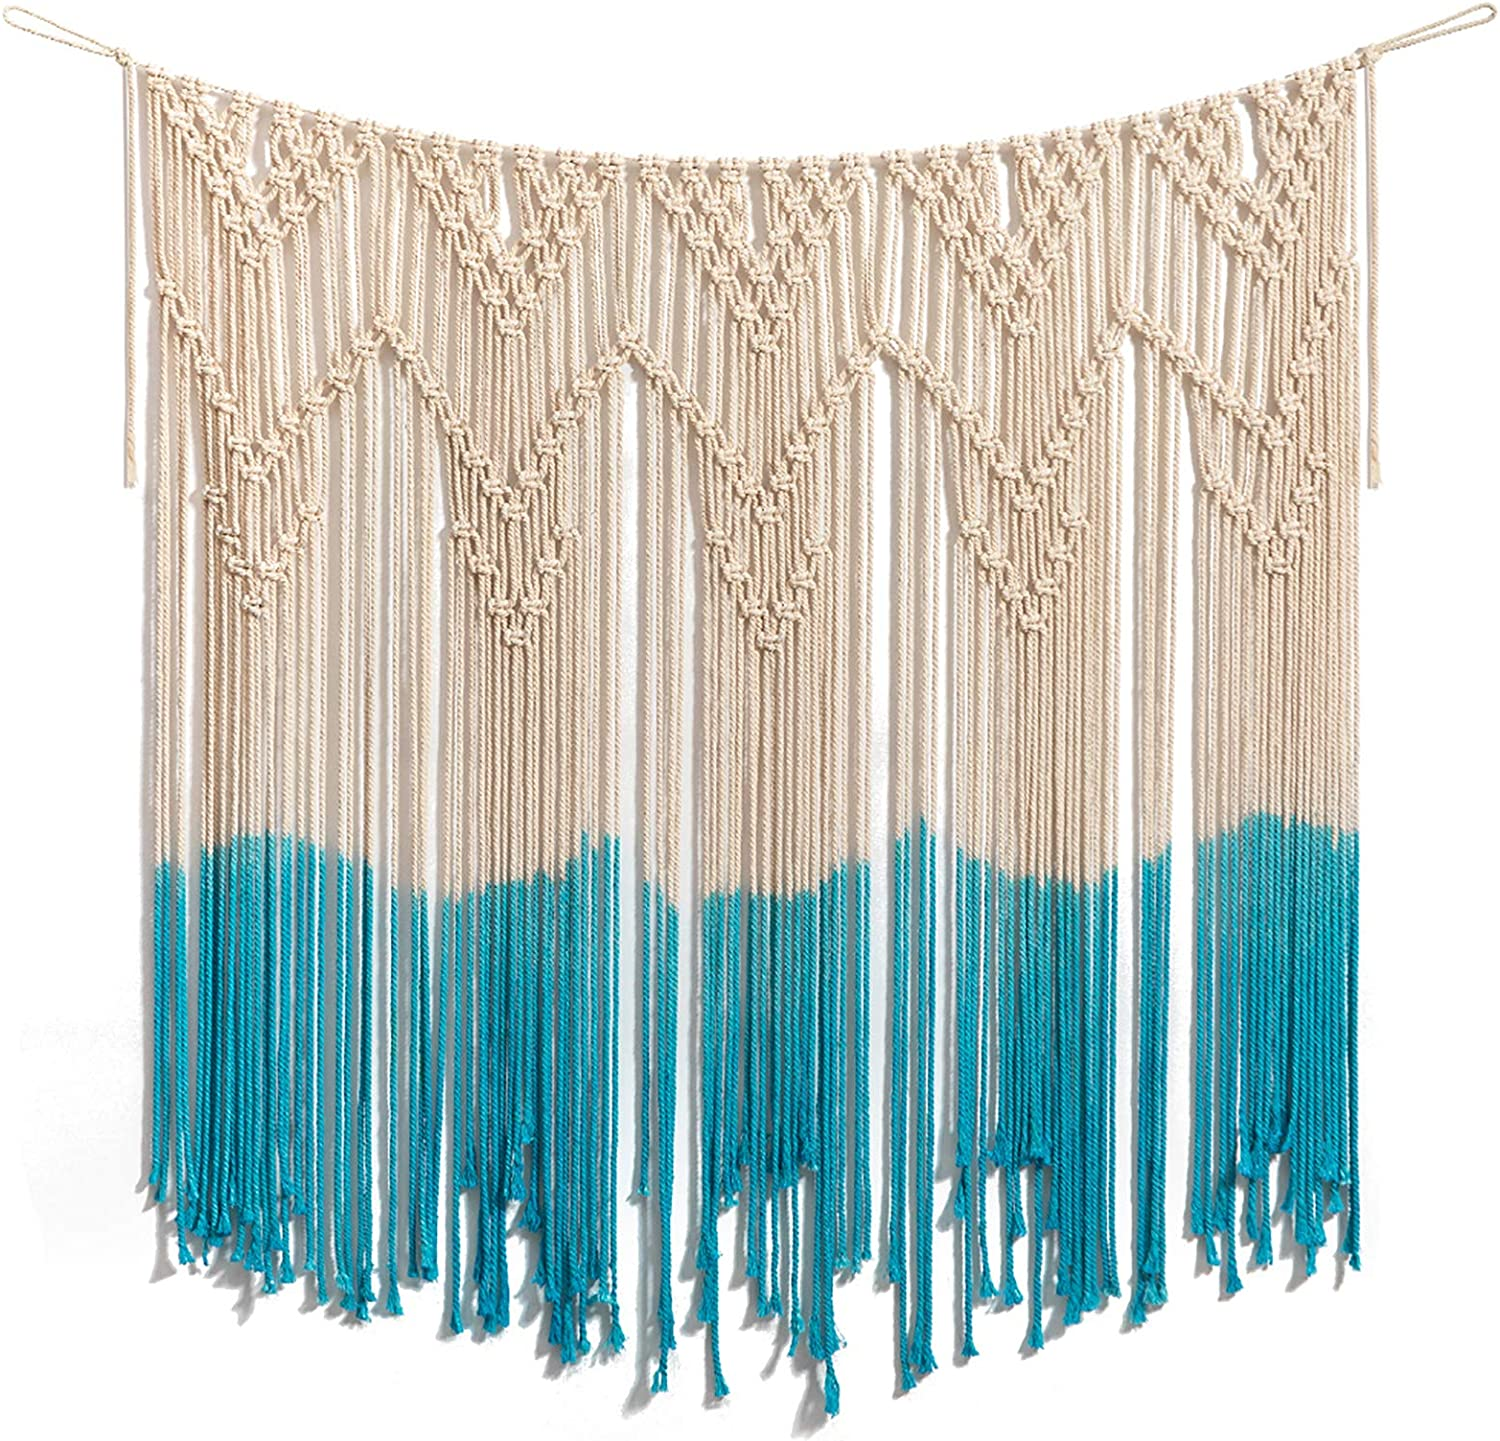 """ARTALL Wall Hanging Macrame Curtain Fringe Banner Bohemian Wall Decor Woven Tapestry Home Decoration for Wedding Apartment Teal 40""""x 44"""""""